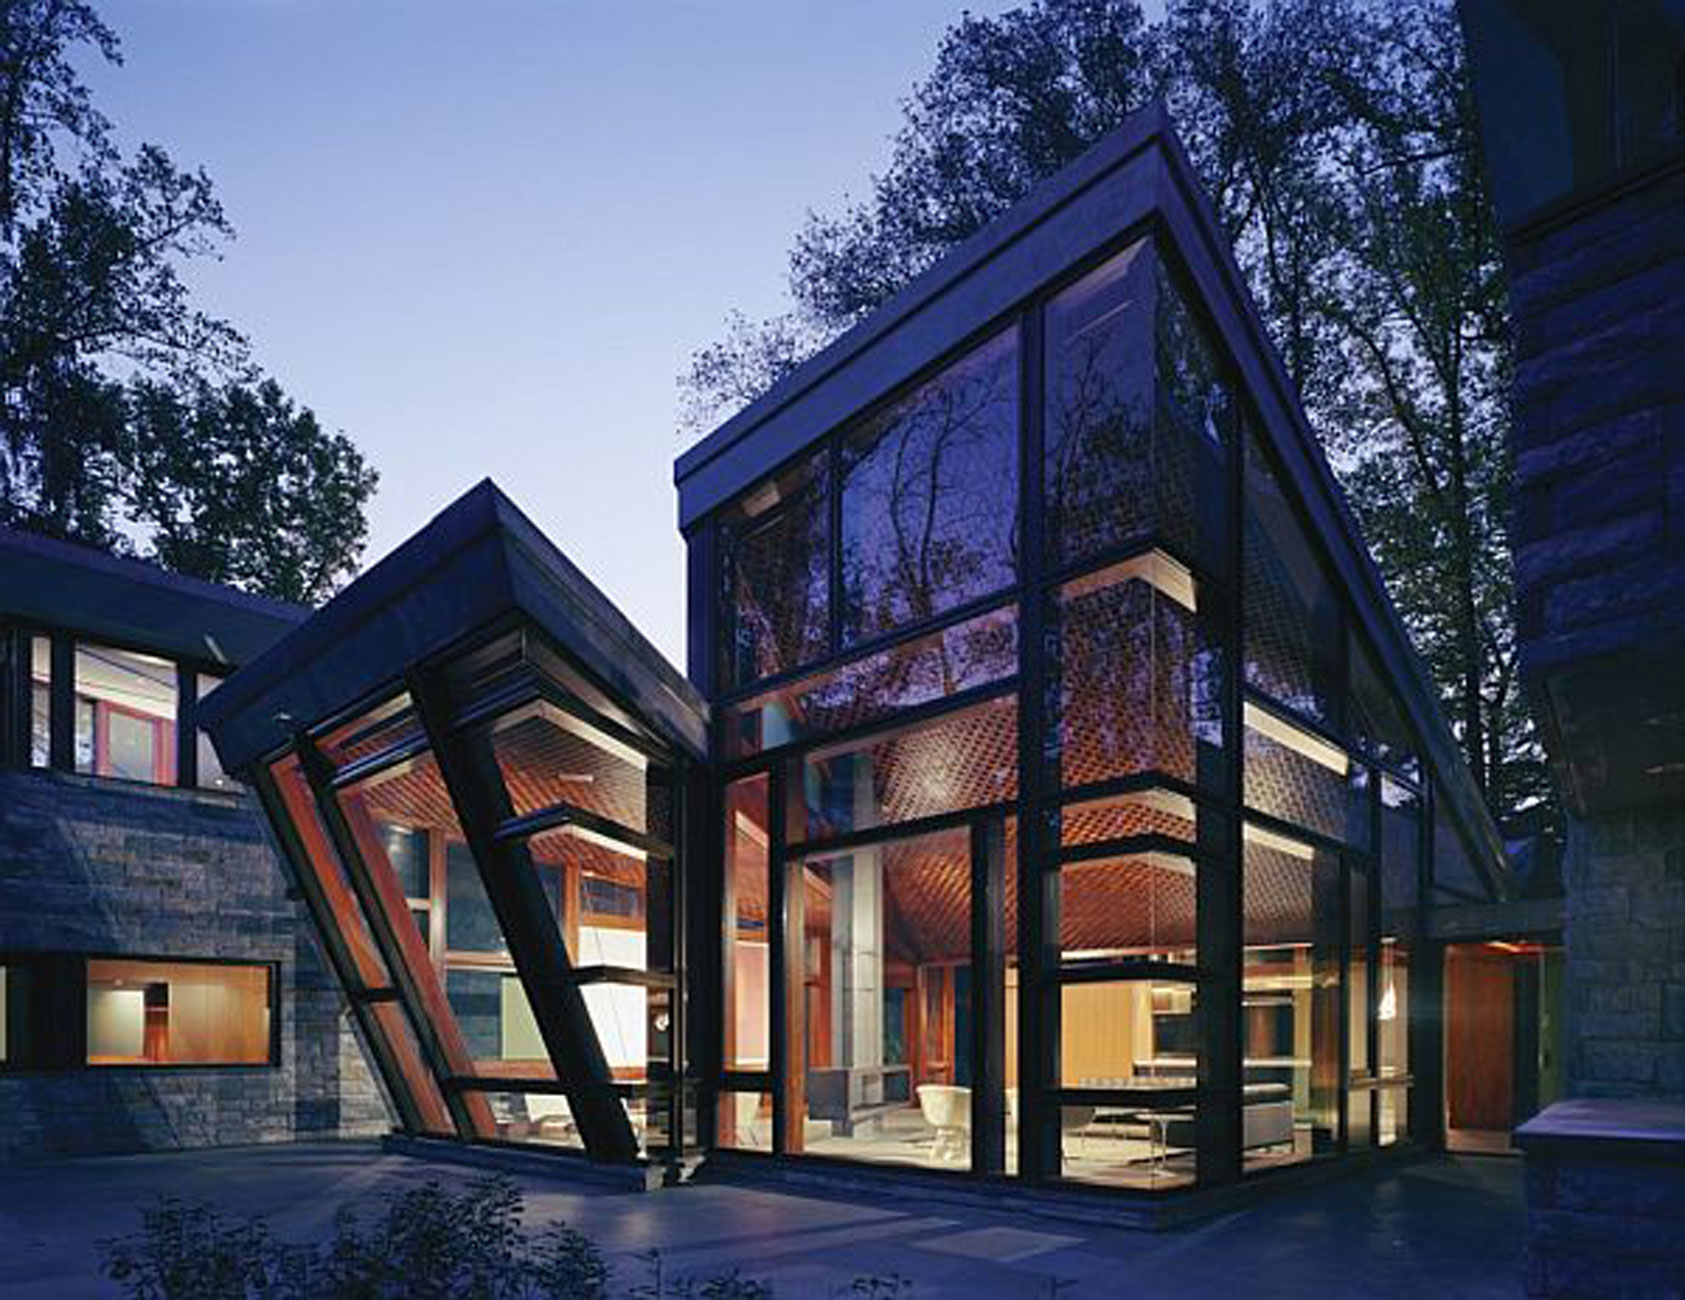 Sunday evening art gallery blog glass houses humoring for Modern architecture design house